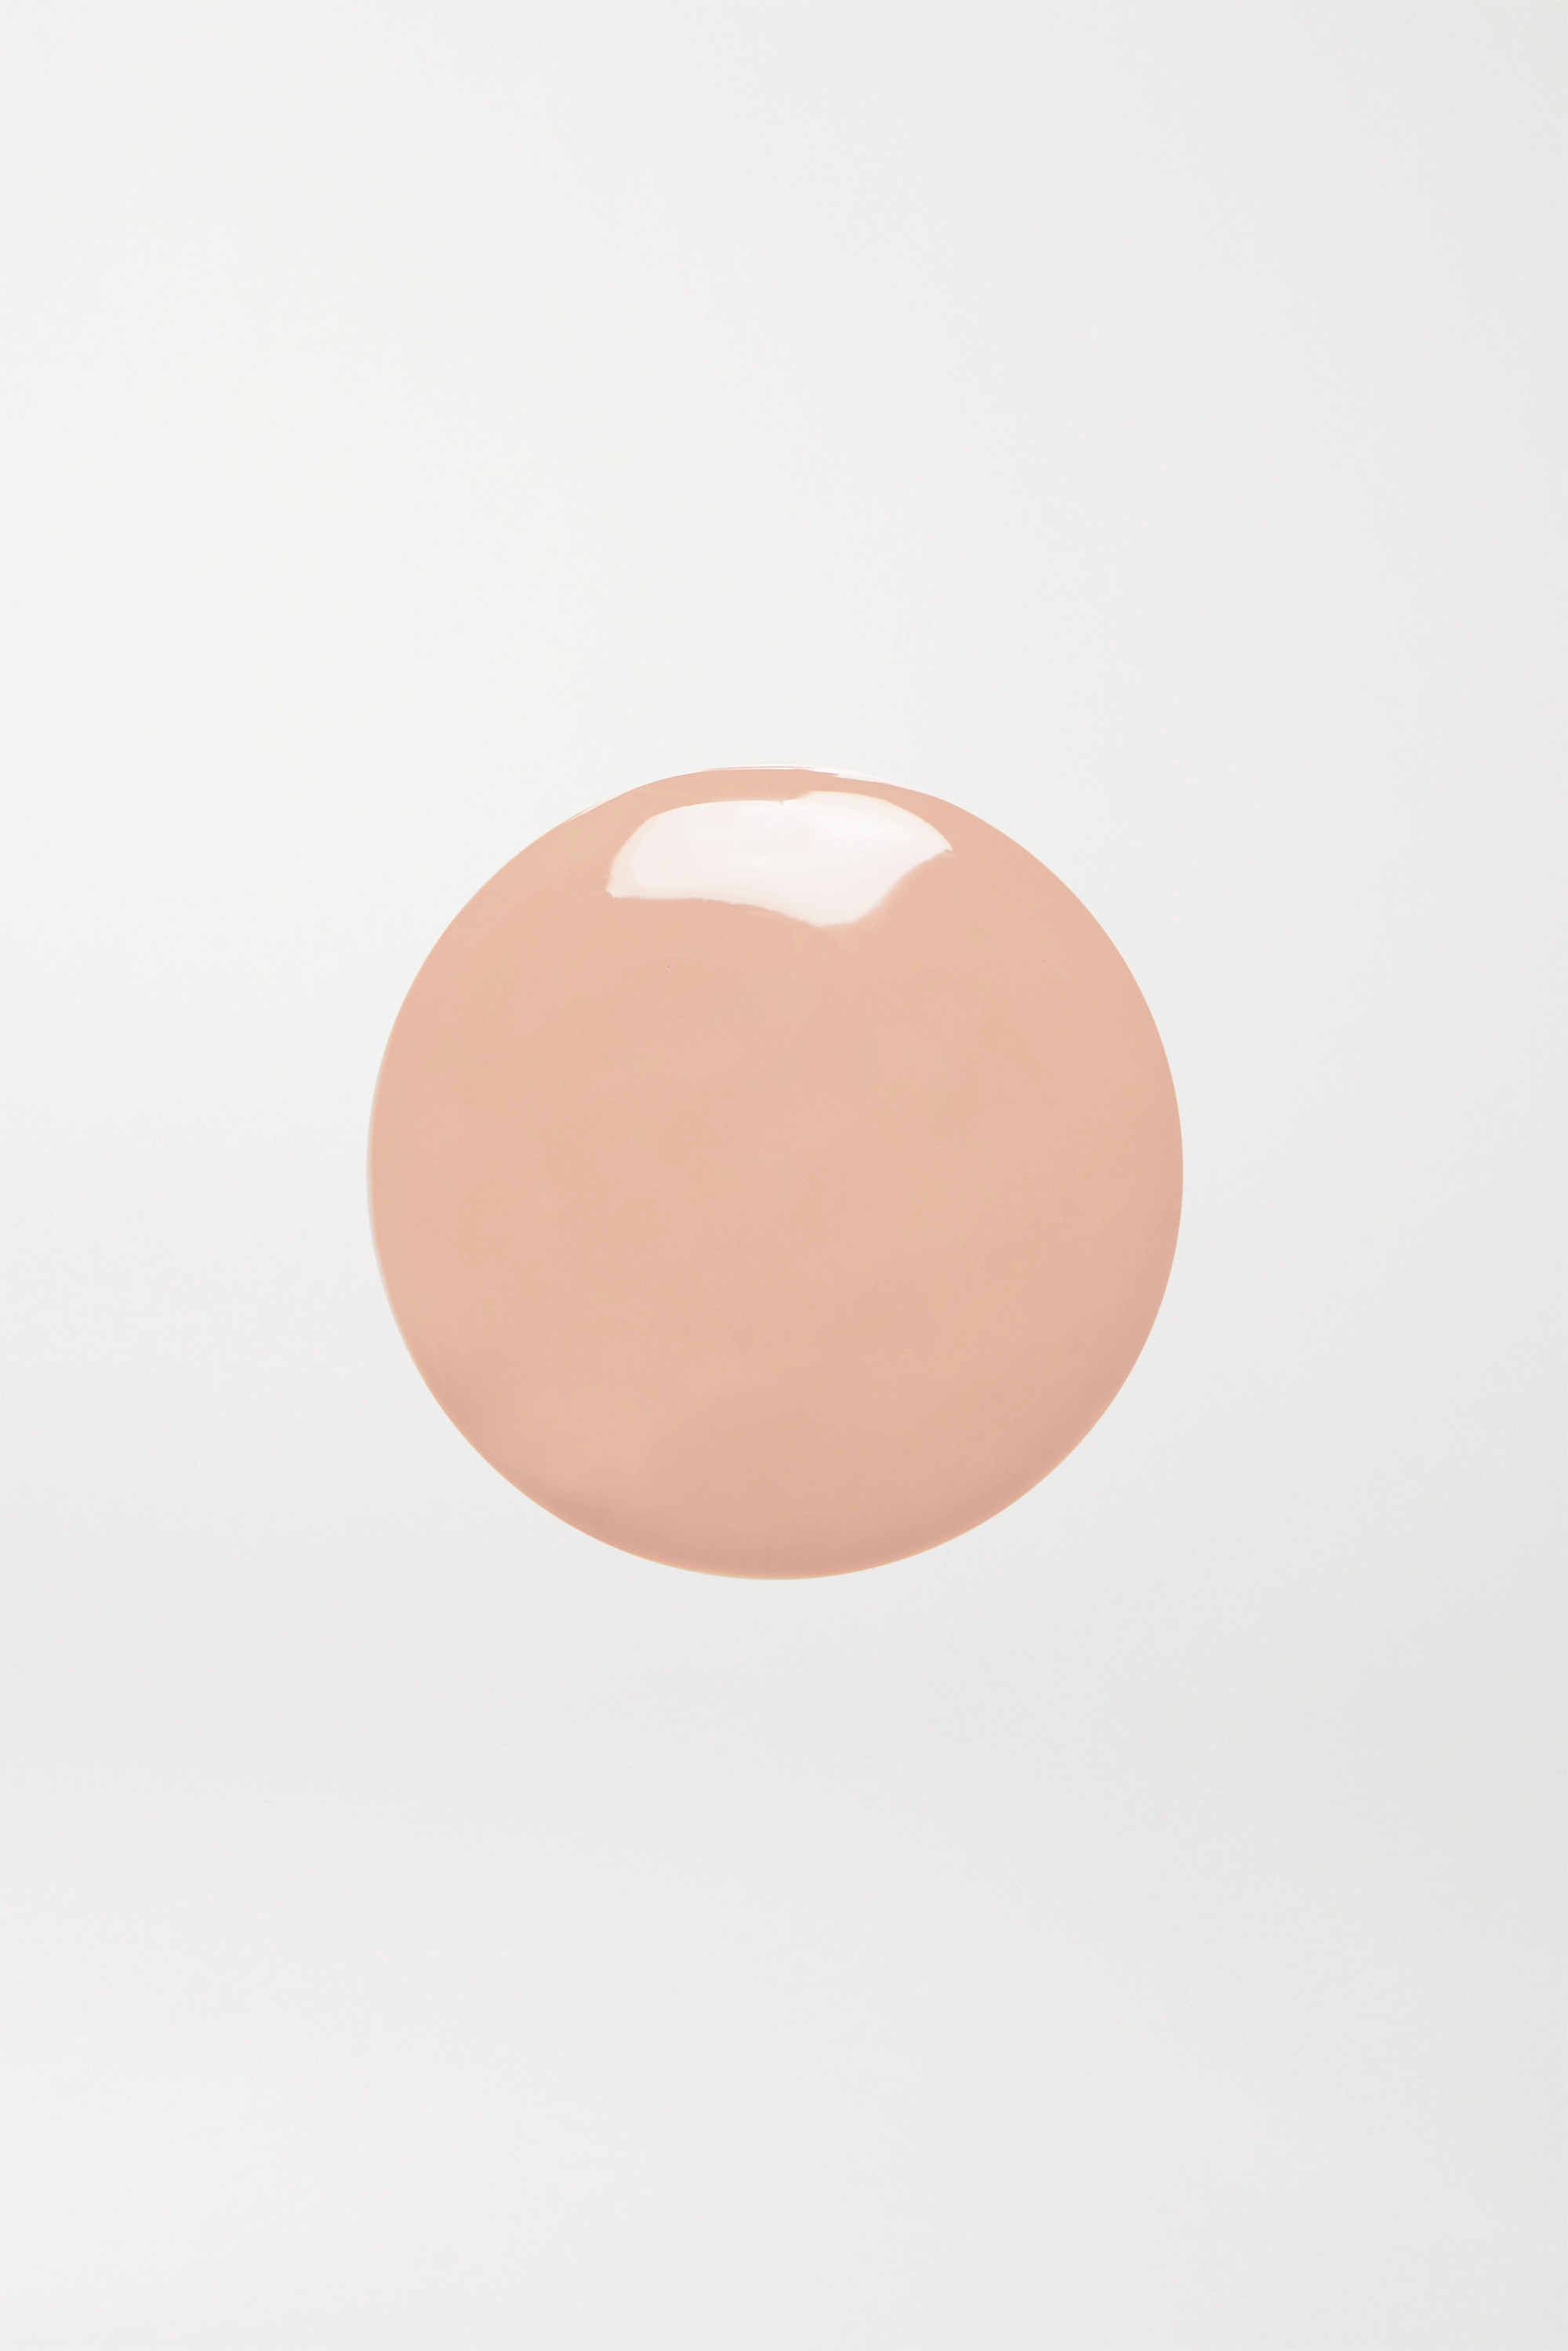 BY TERRY Hyaluronic Hydra-Foundation SPF30 - 100C